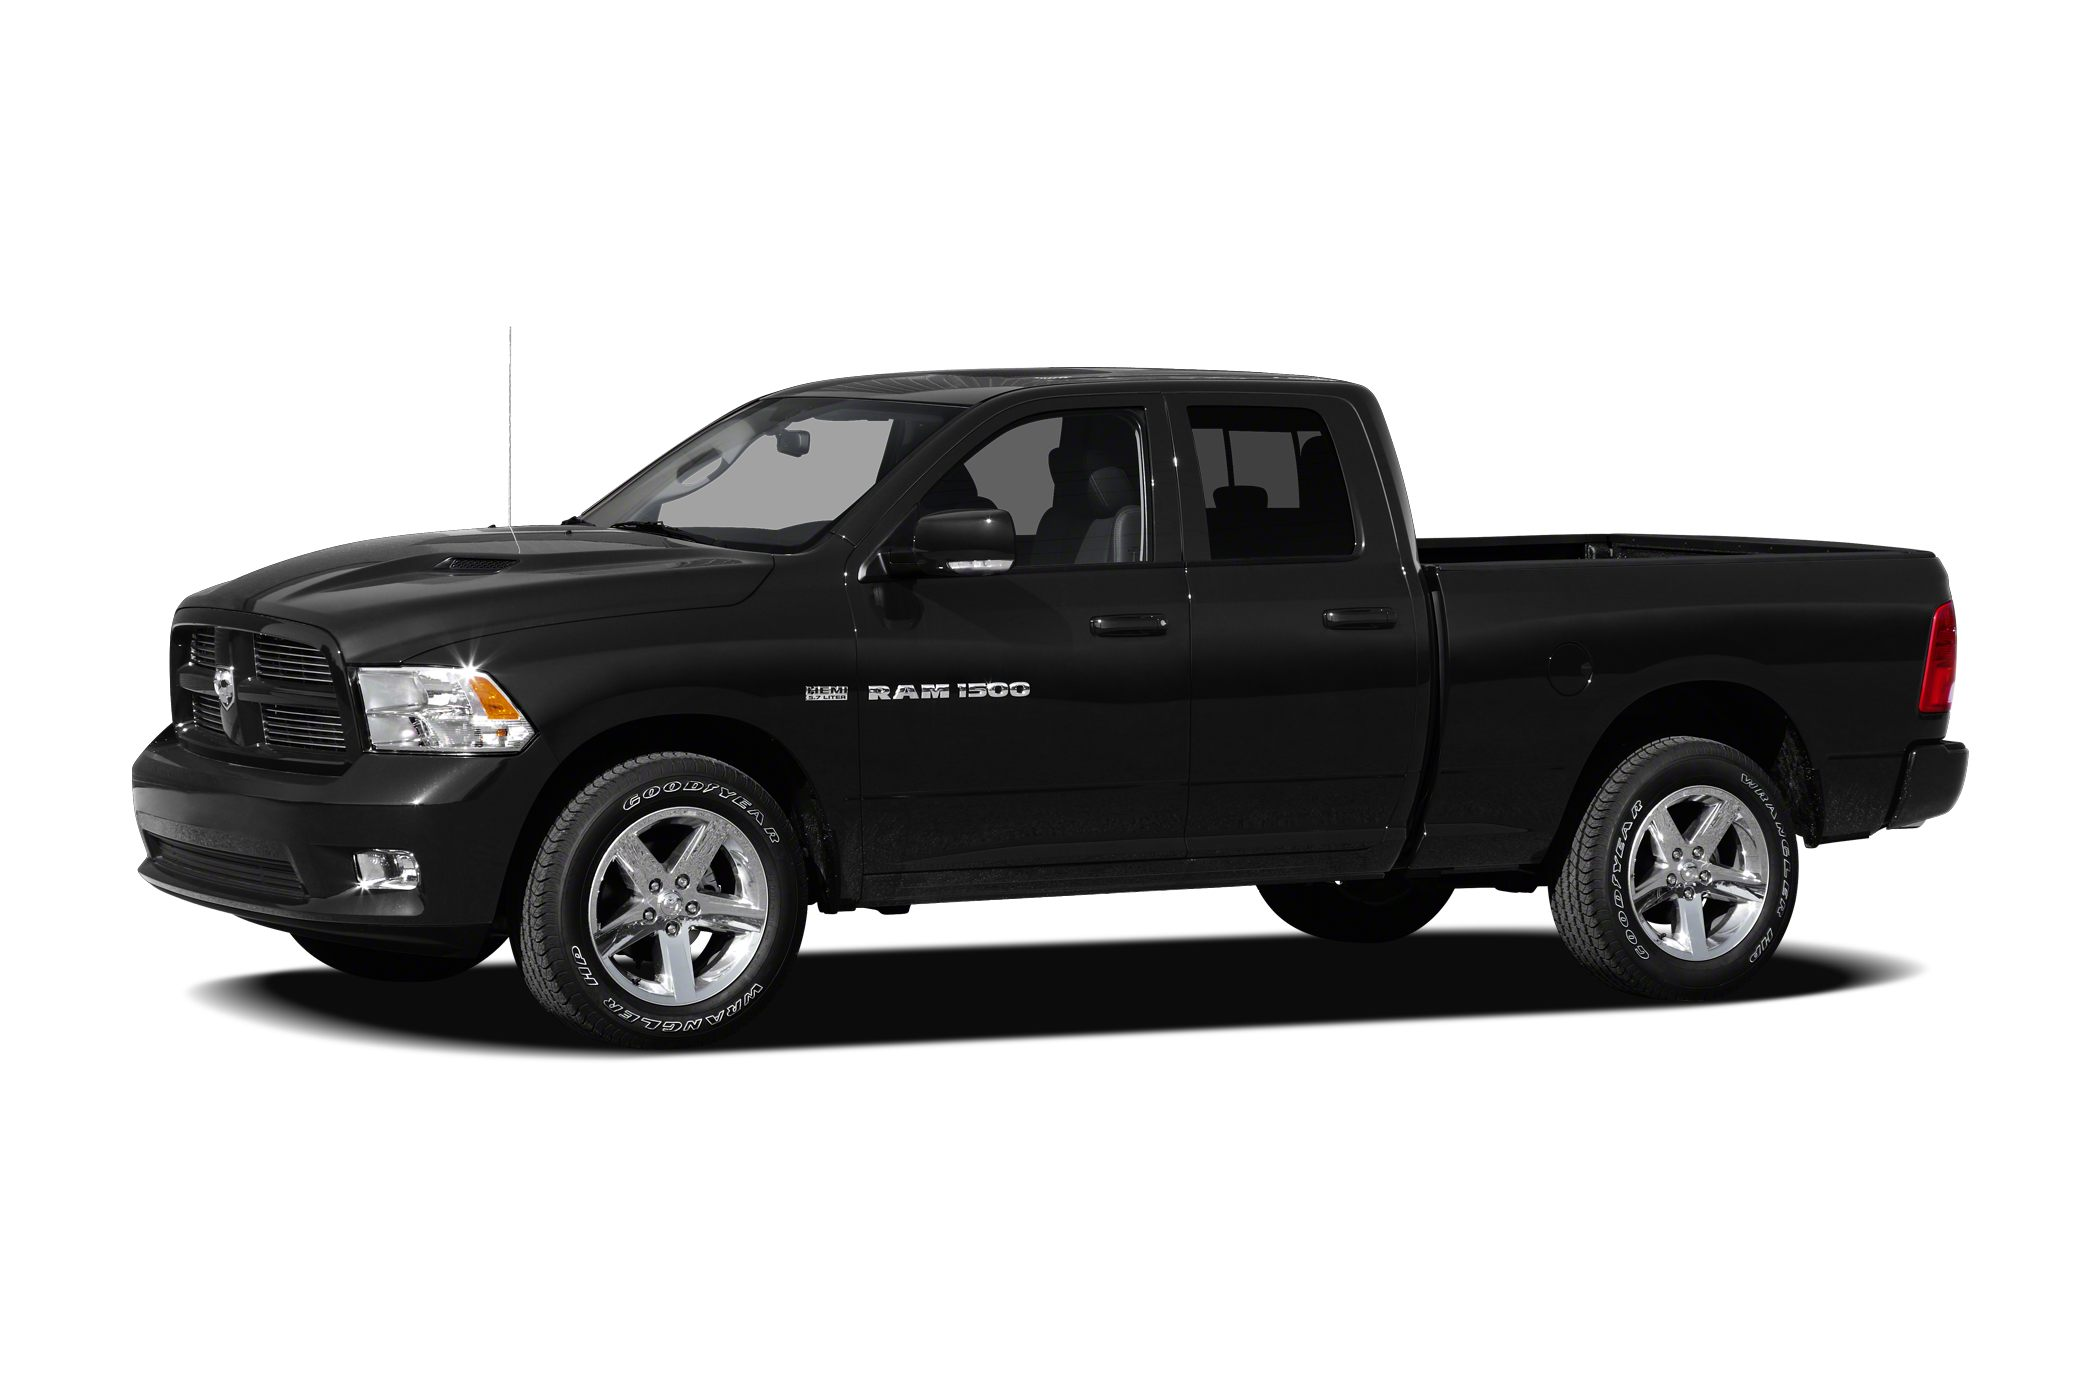 2012 RAM 1500 Laramie Crew Cab Pickup for sale in Lynnwood for $35,700 with 13,353 miles.